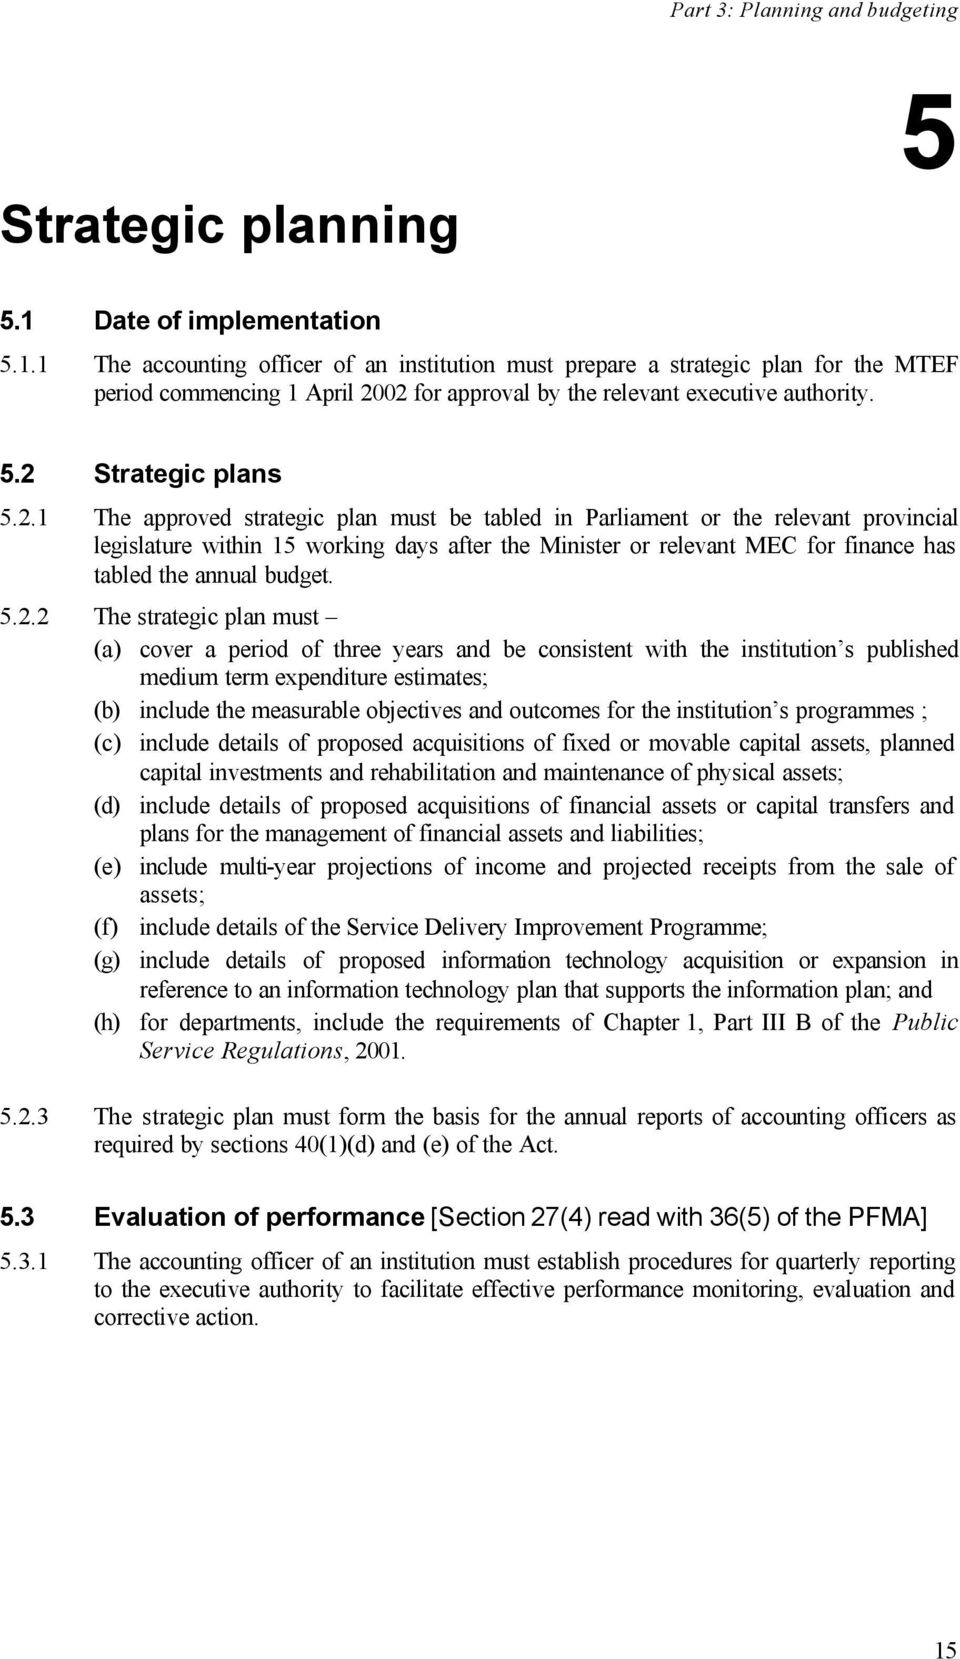 2.1 The approved strategic plan must be tabled in Parliament or the relevant provincial legislature within 15 working days after the Minister or relevant MEC for finance has tabled the annual budget.